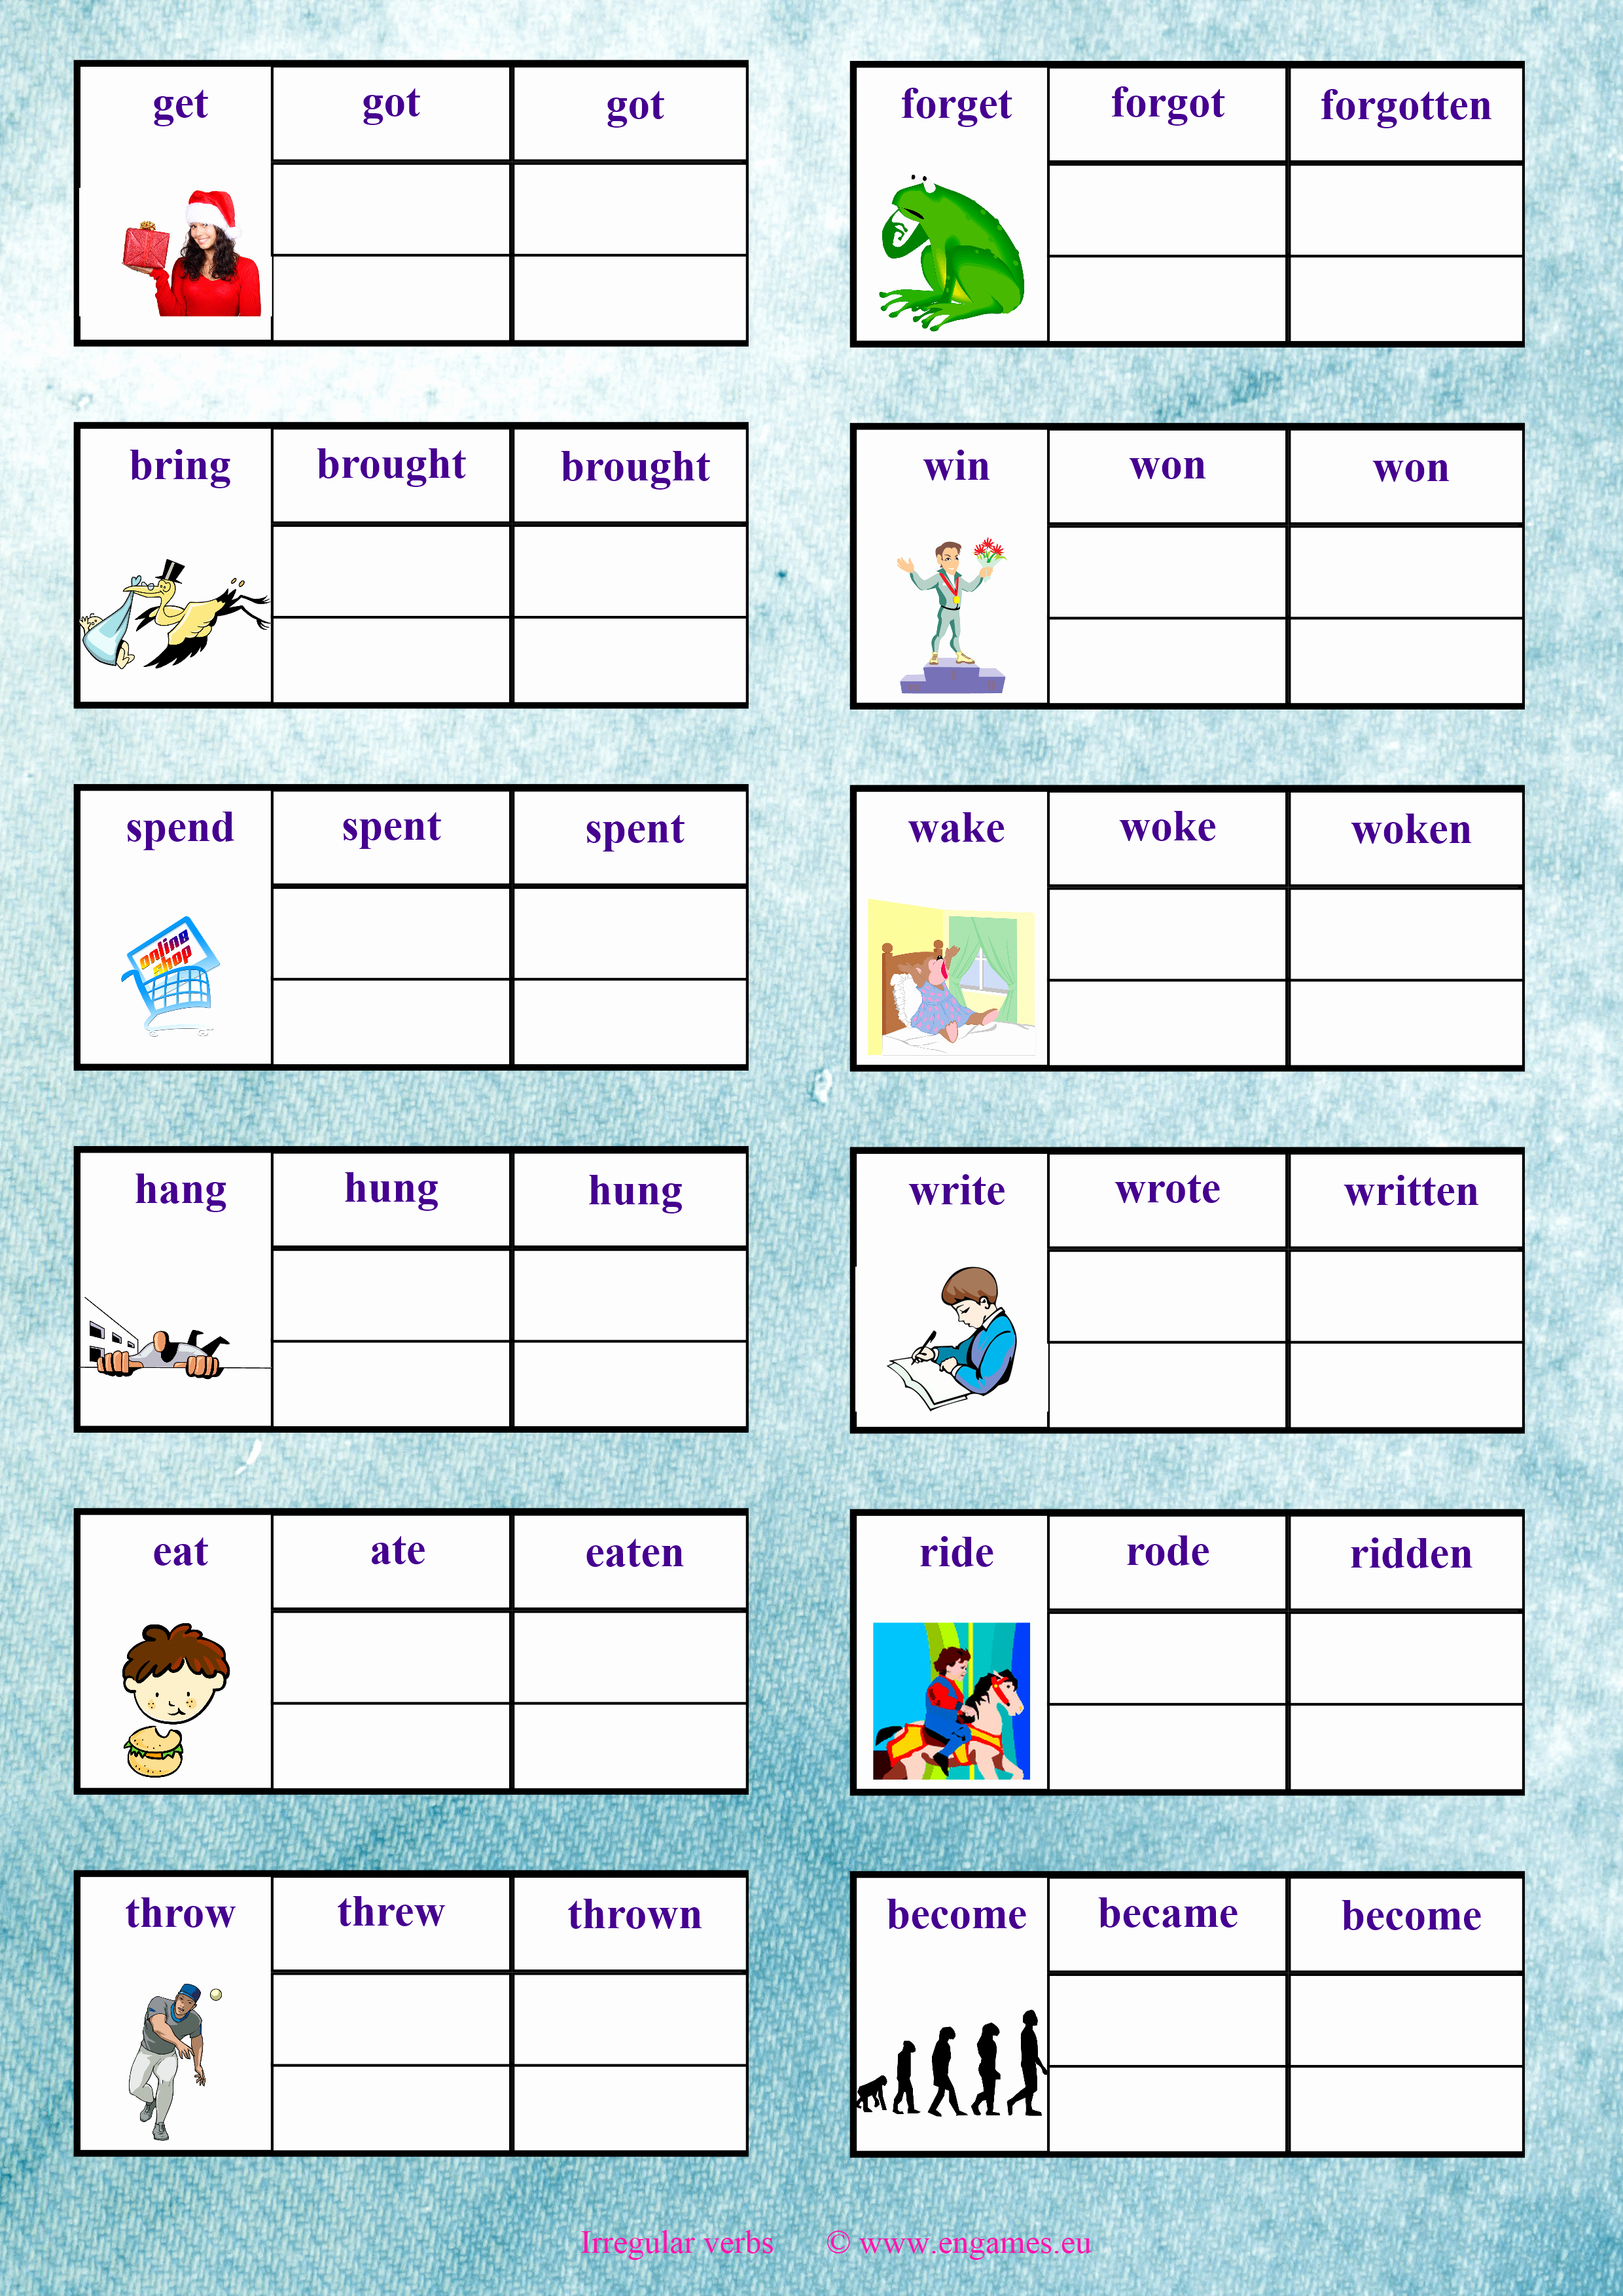 Irregular Verbs Worksheet Pdf Luxury Irregular Verbs Again 2 Games to Learn English